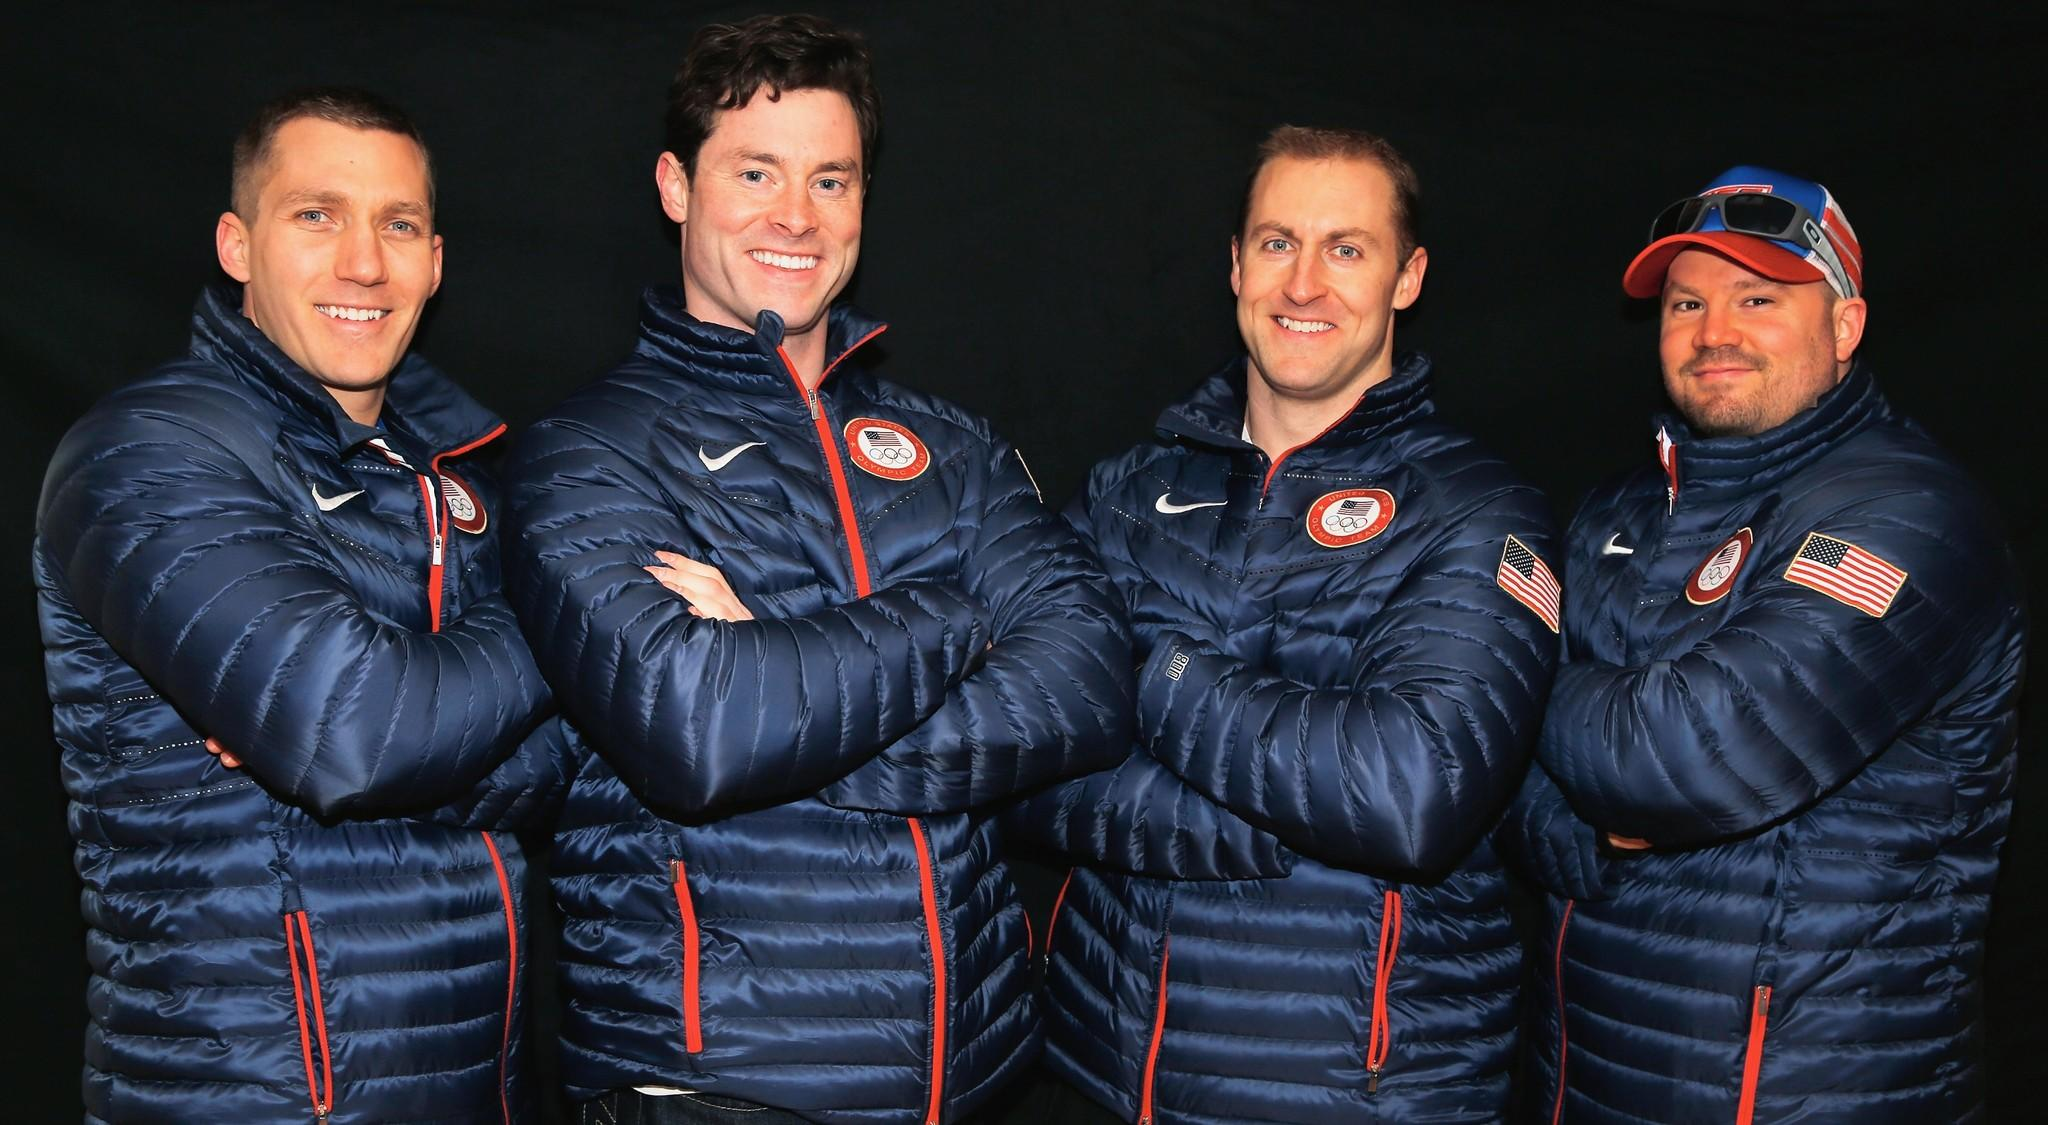 Chris Fogt, Steve Langton, Curt Tomasevicz and Steven Holcomb pose for a portrait ahead of the Sochi 2014 Winter Olympics. (Scott Halleran/Getty Photo)